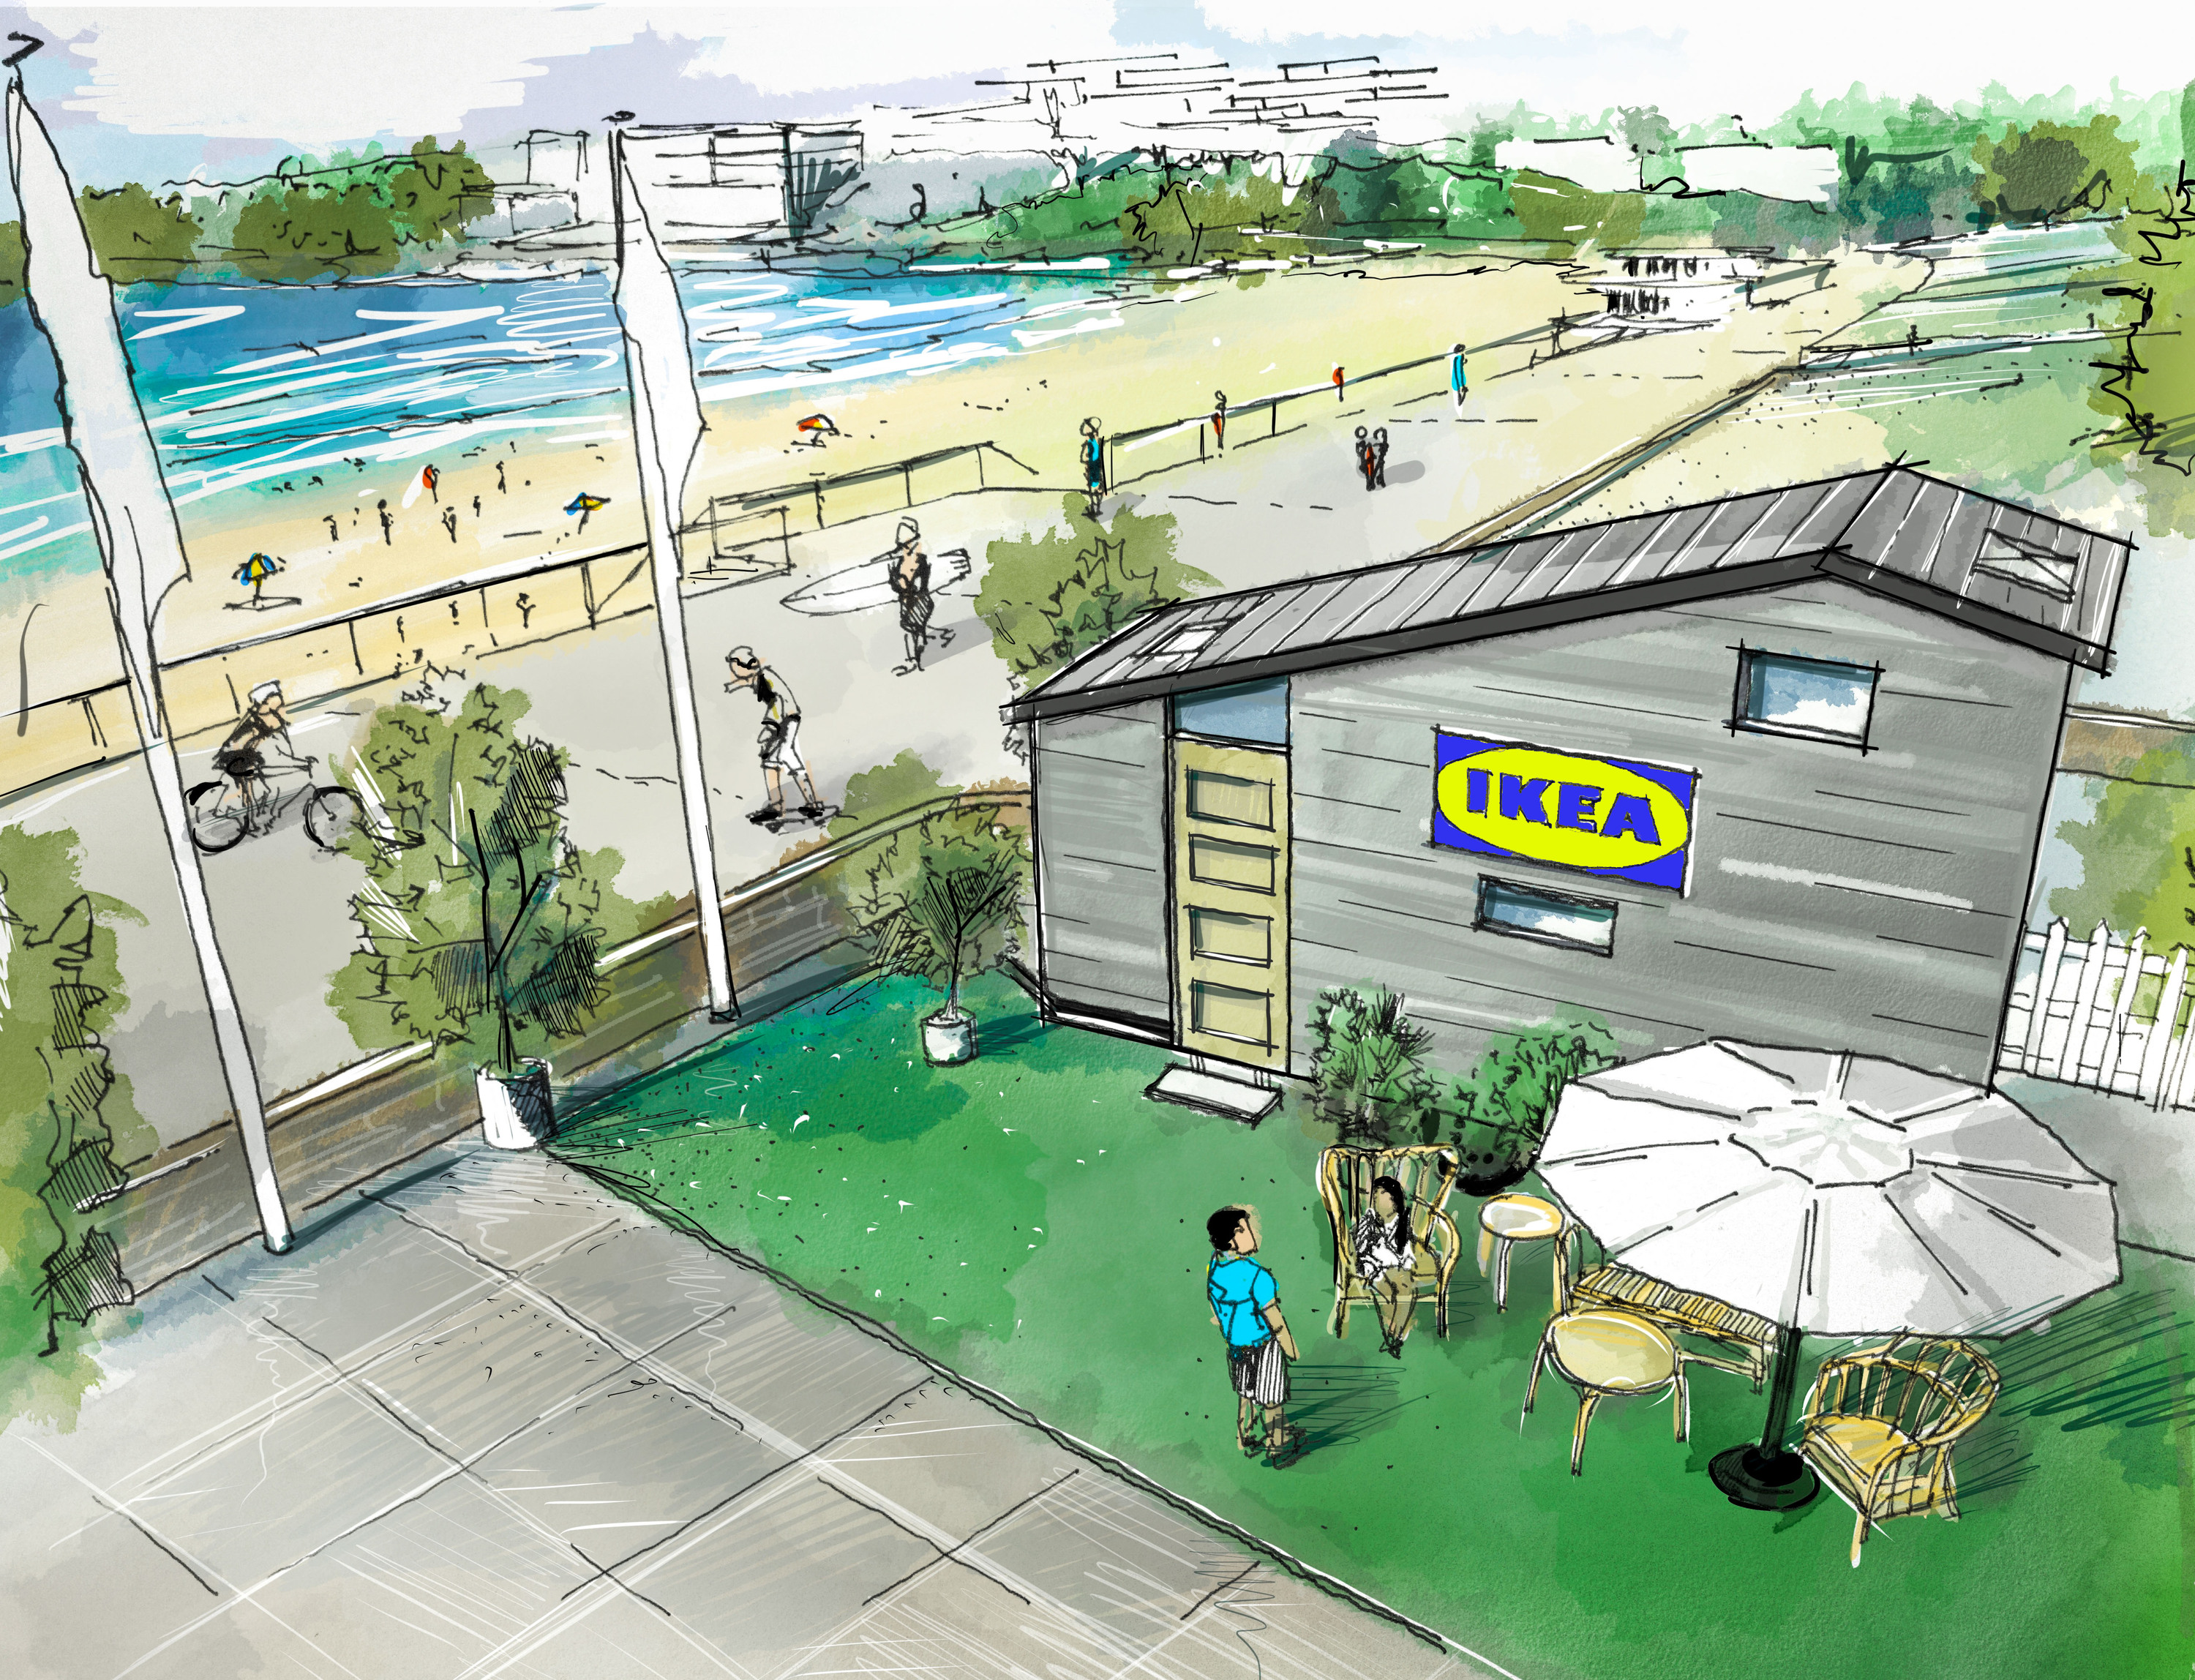 An IKEA tiny home is popping up at Bondi Beach